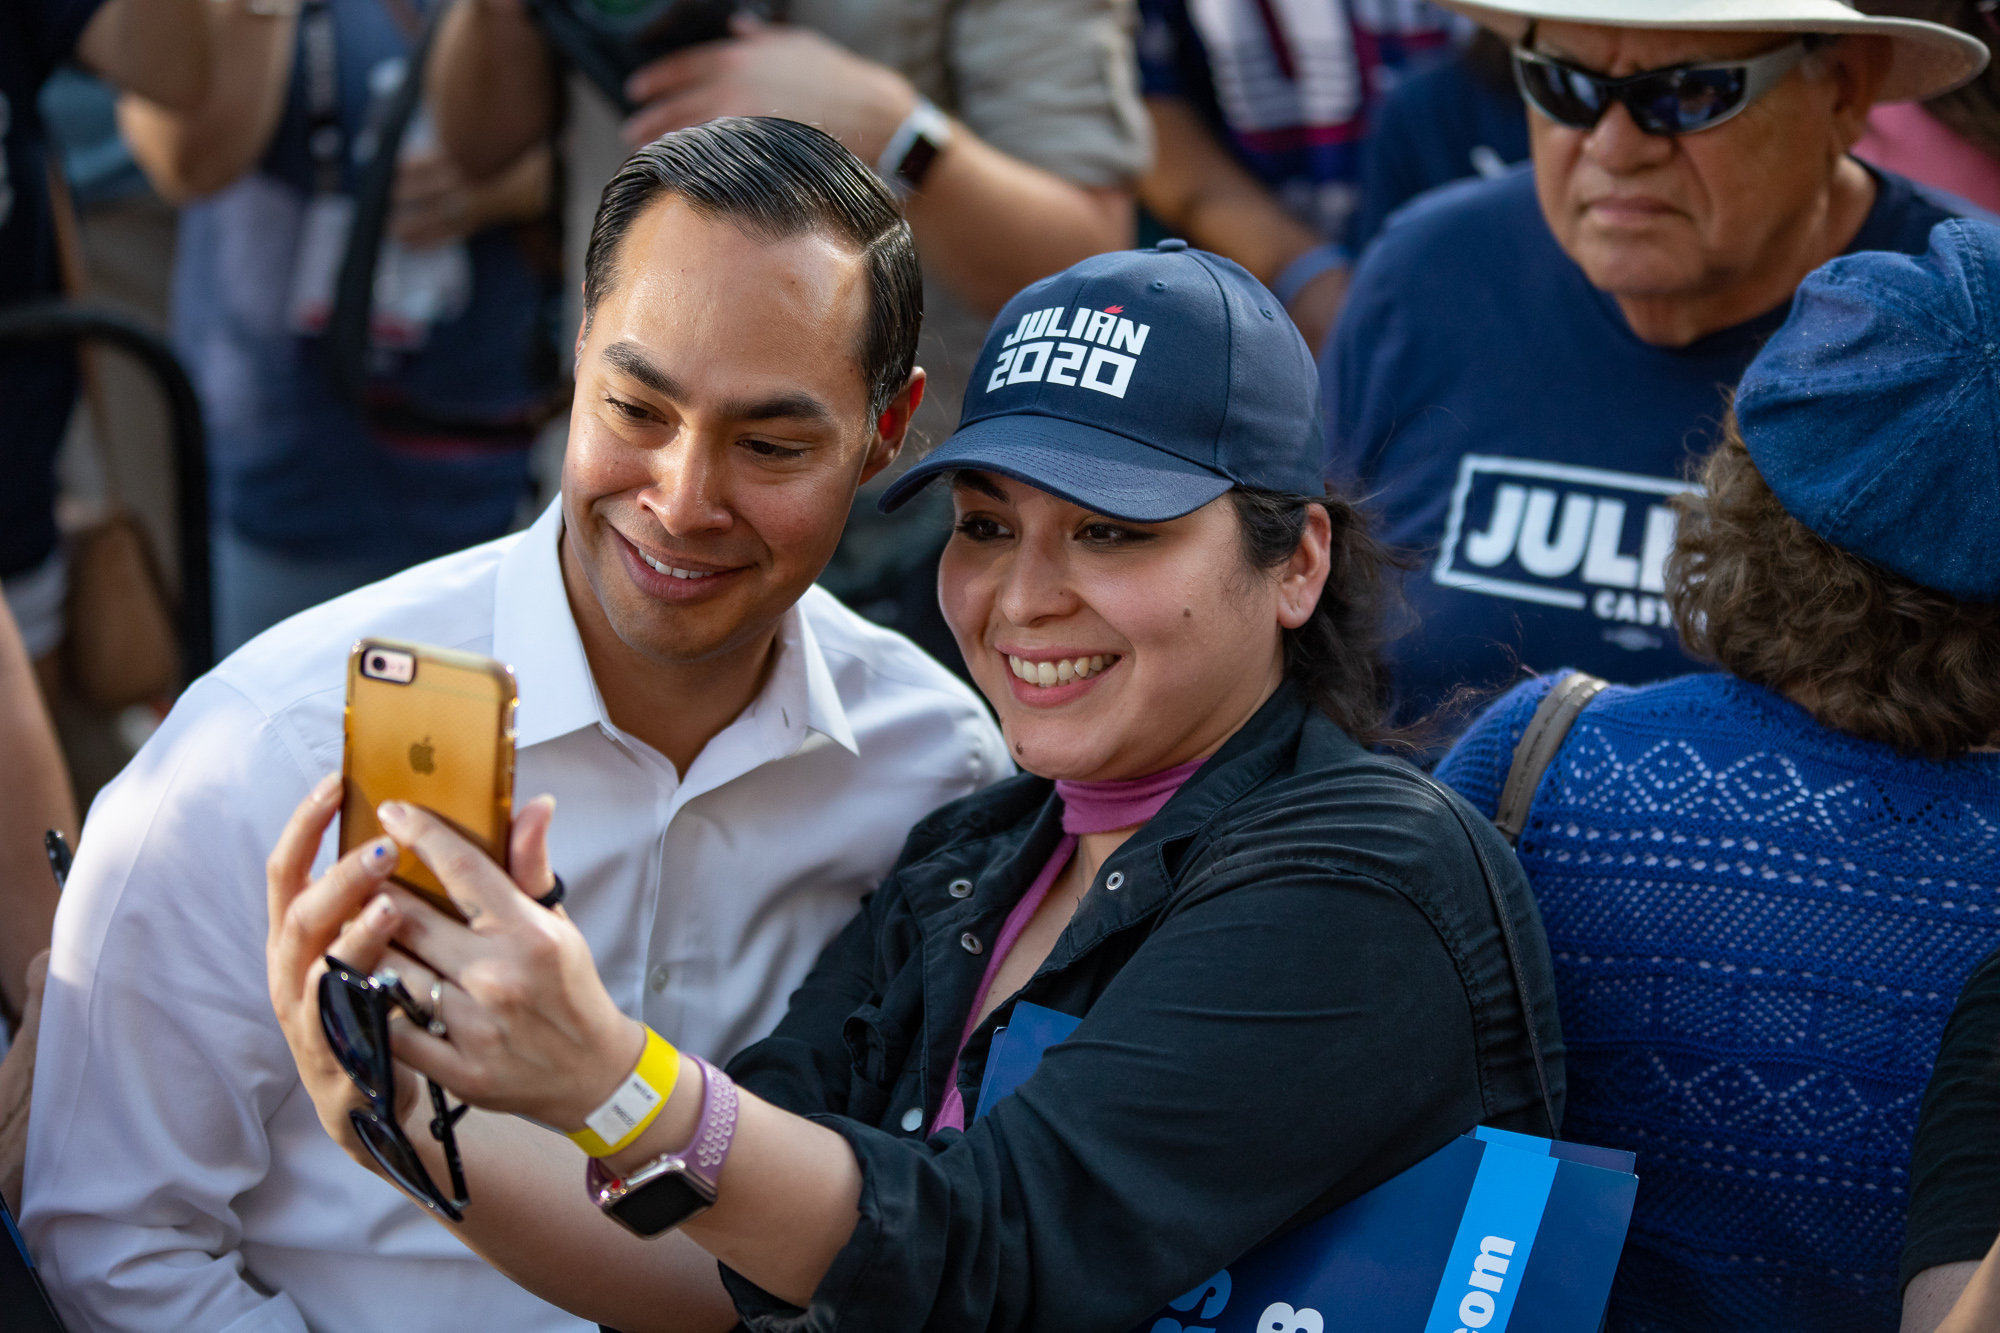 A fan snaps a selfie with Castro after the rally. (Photo by:  Joel Pena , Photographer - The San Antonio Sentinel)